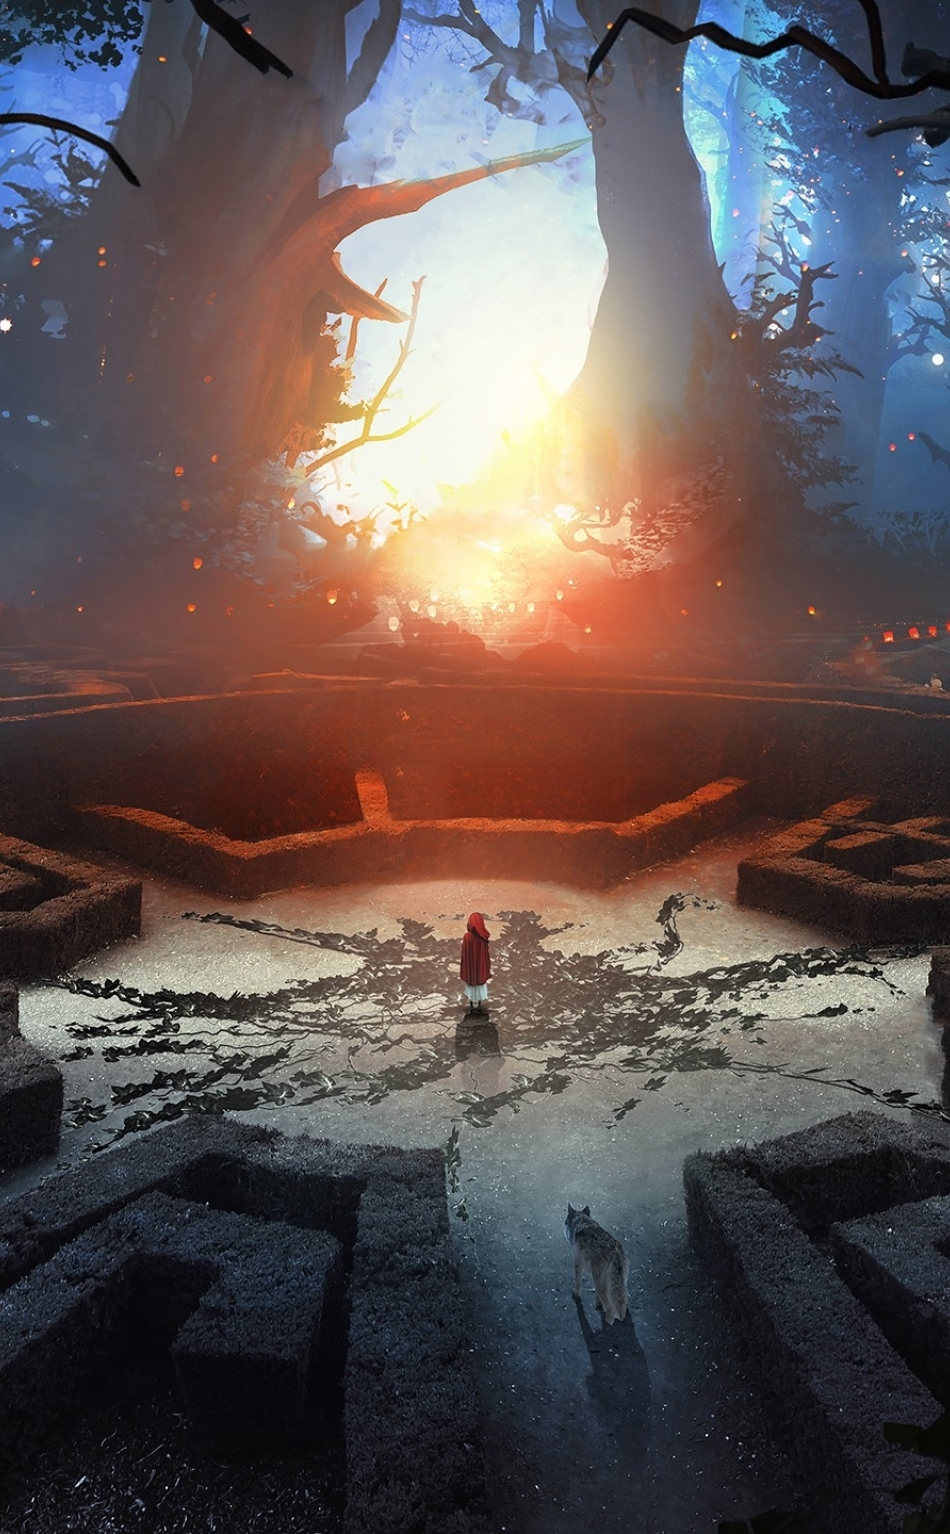 Download labyrinth wolf and boy 3d abstract fantasy art - Art wallpaper 2160x3840 ...